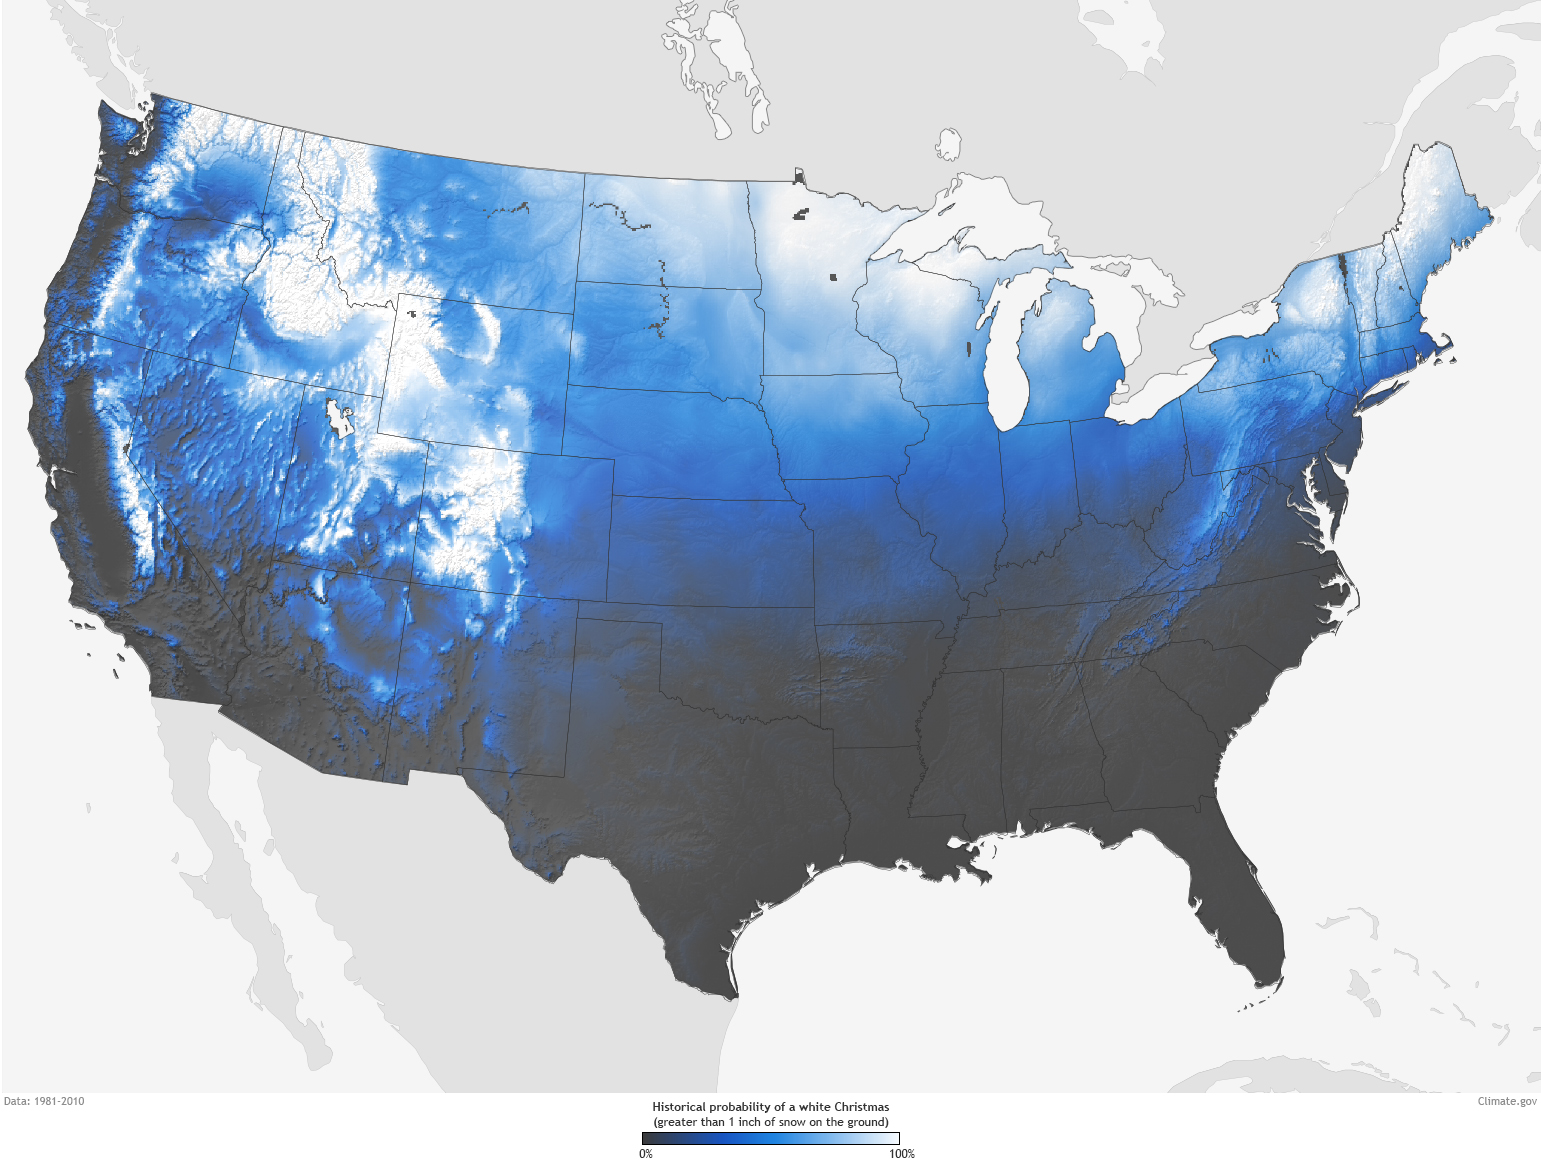 Are You Dreaming Of A White Christmas NOAA Climategov - Us weather map noaa